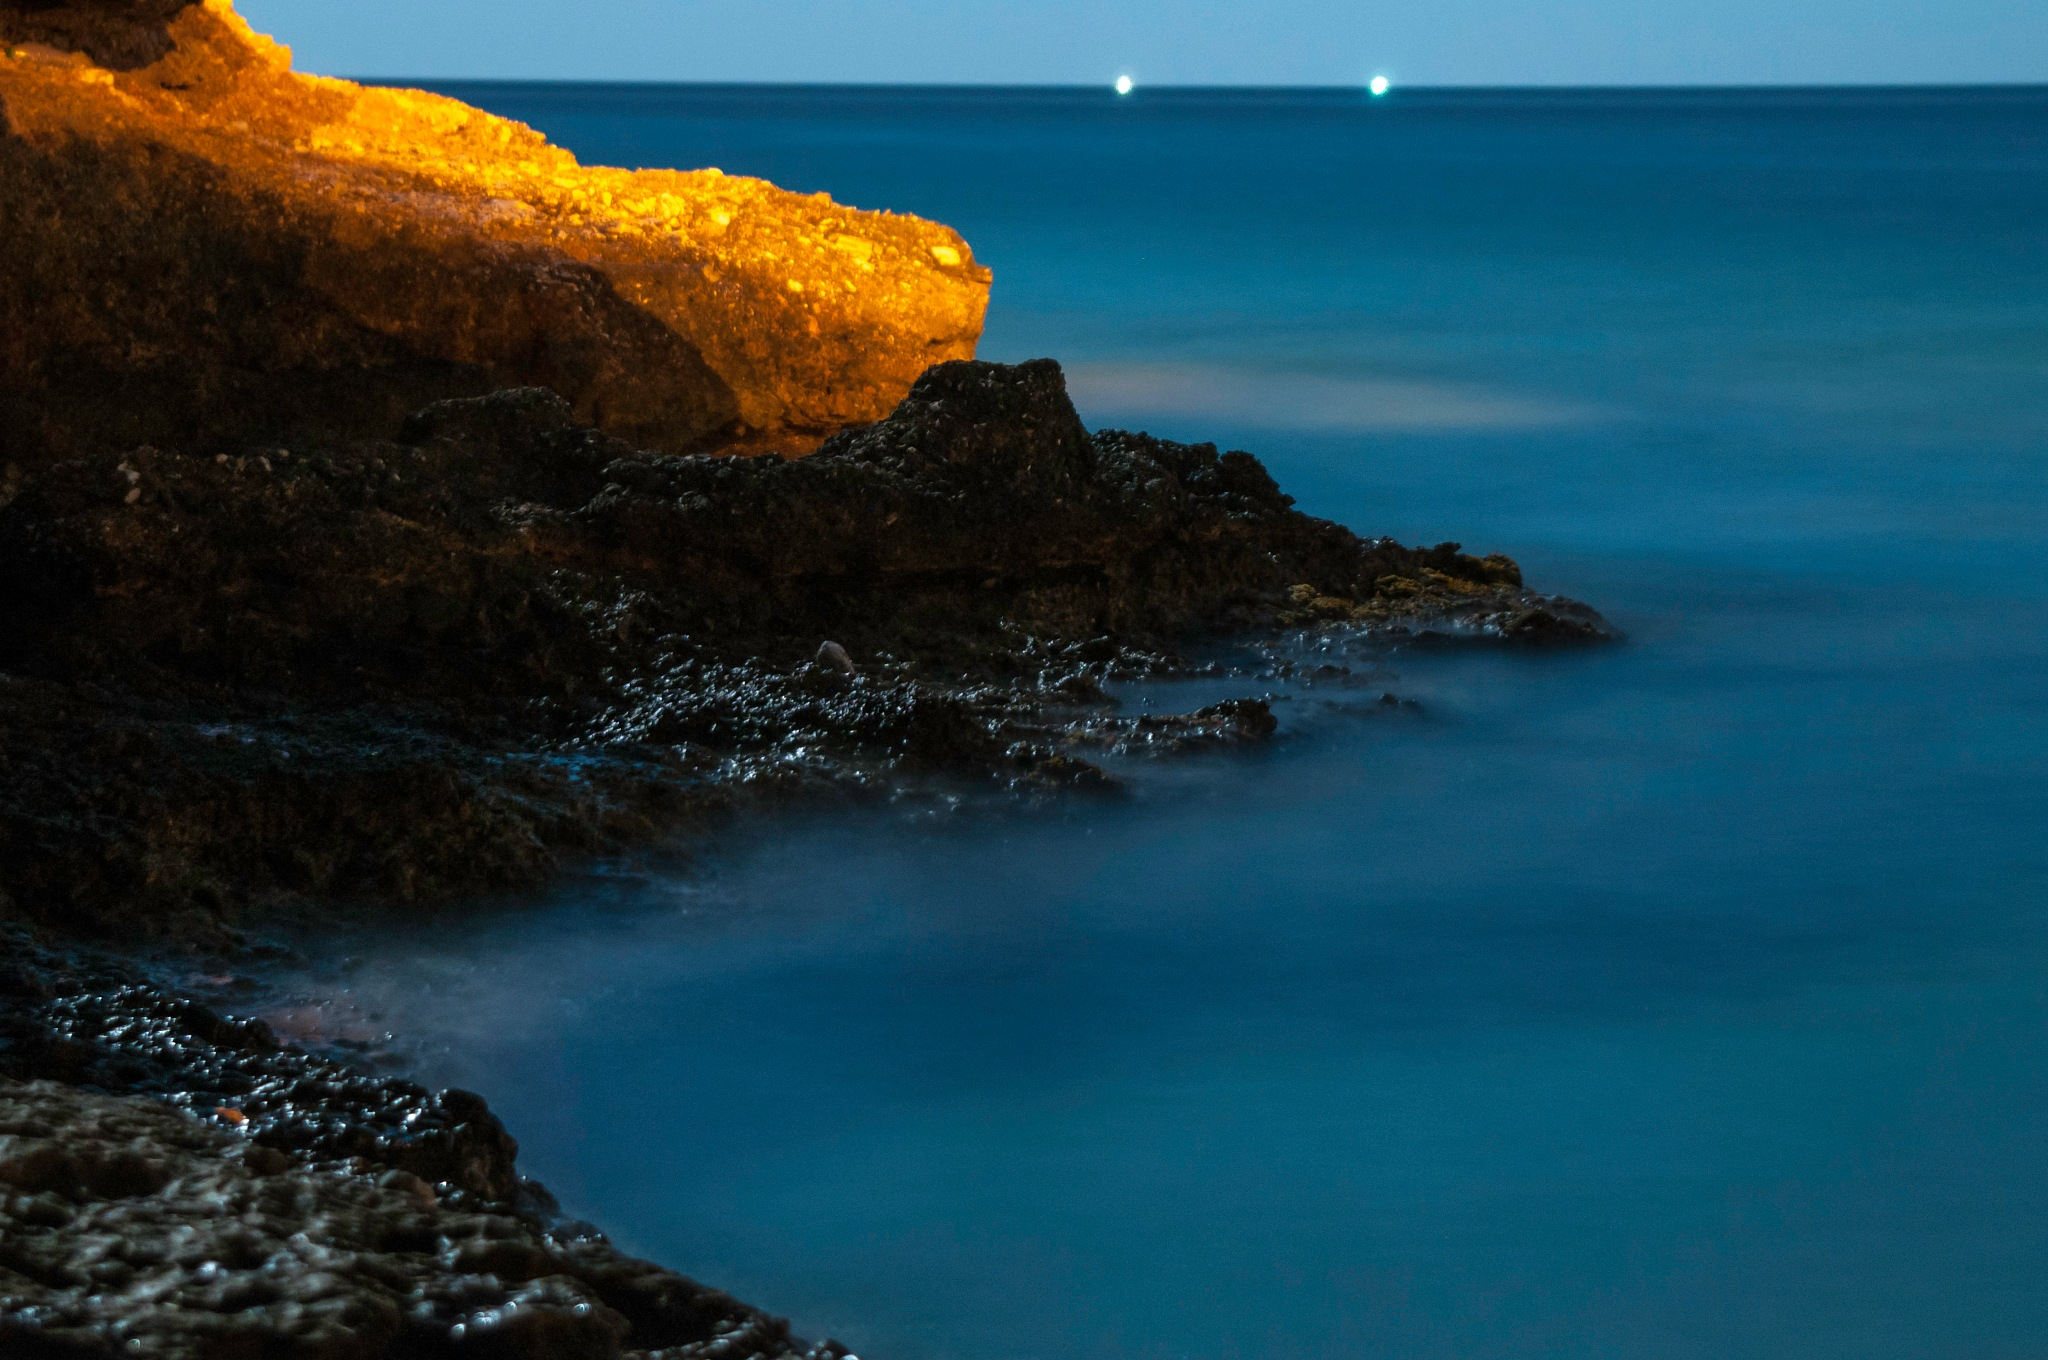 Sea at night #3 by stratos